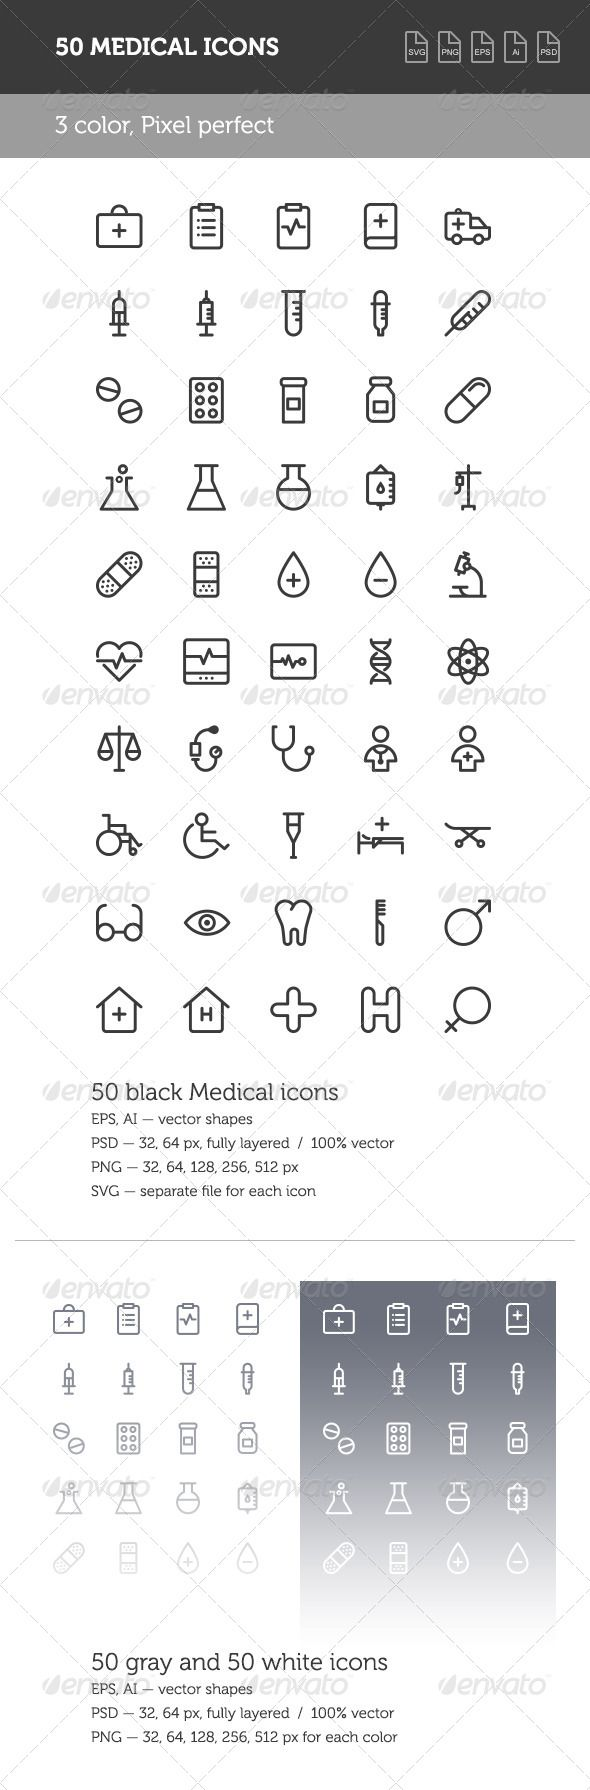 Medical Icon Set ambulance, band aid, blood, care, cross, doctor, drug, eye, health, heart, hospital, icons, laboratory, medical, medicine, meds, nurse, pharmacy, pill, scales, thermometer, Medical Icon Set